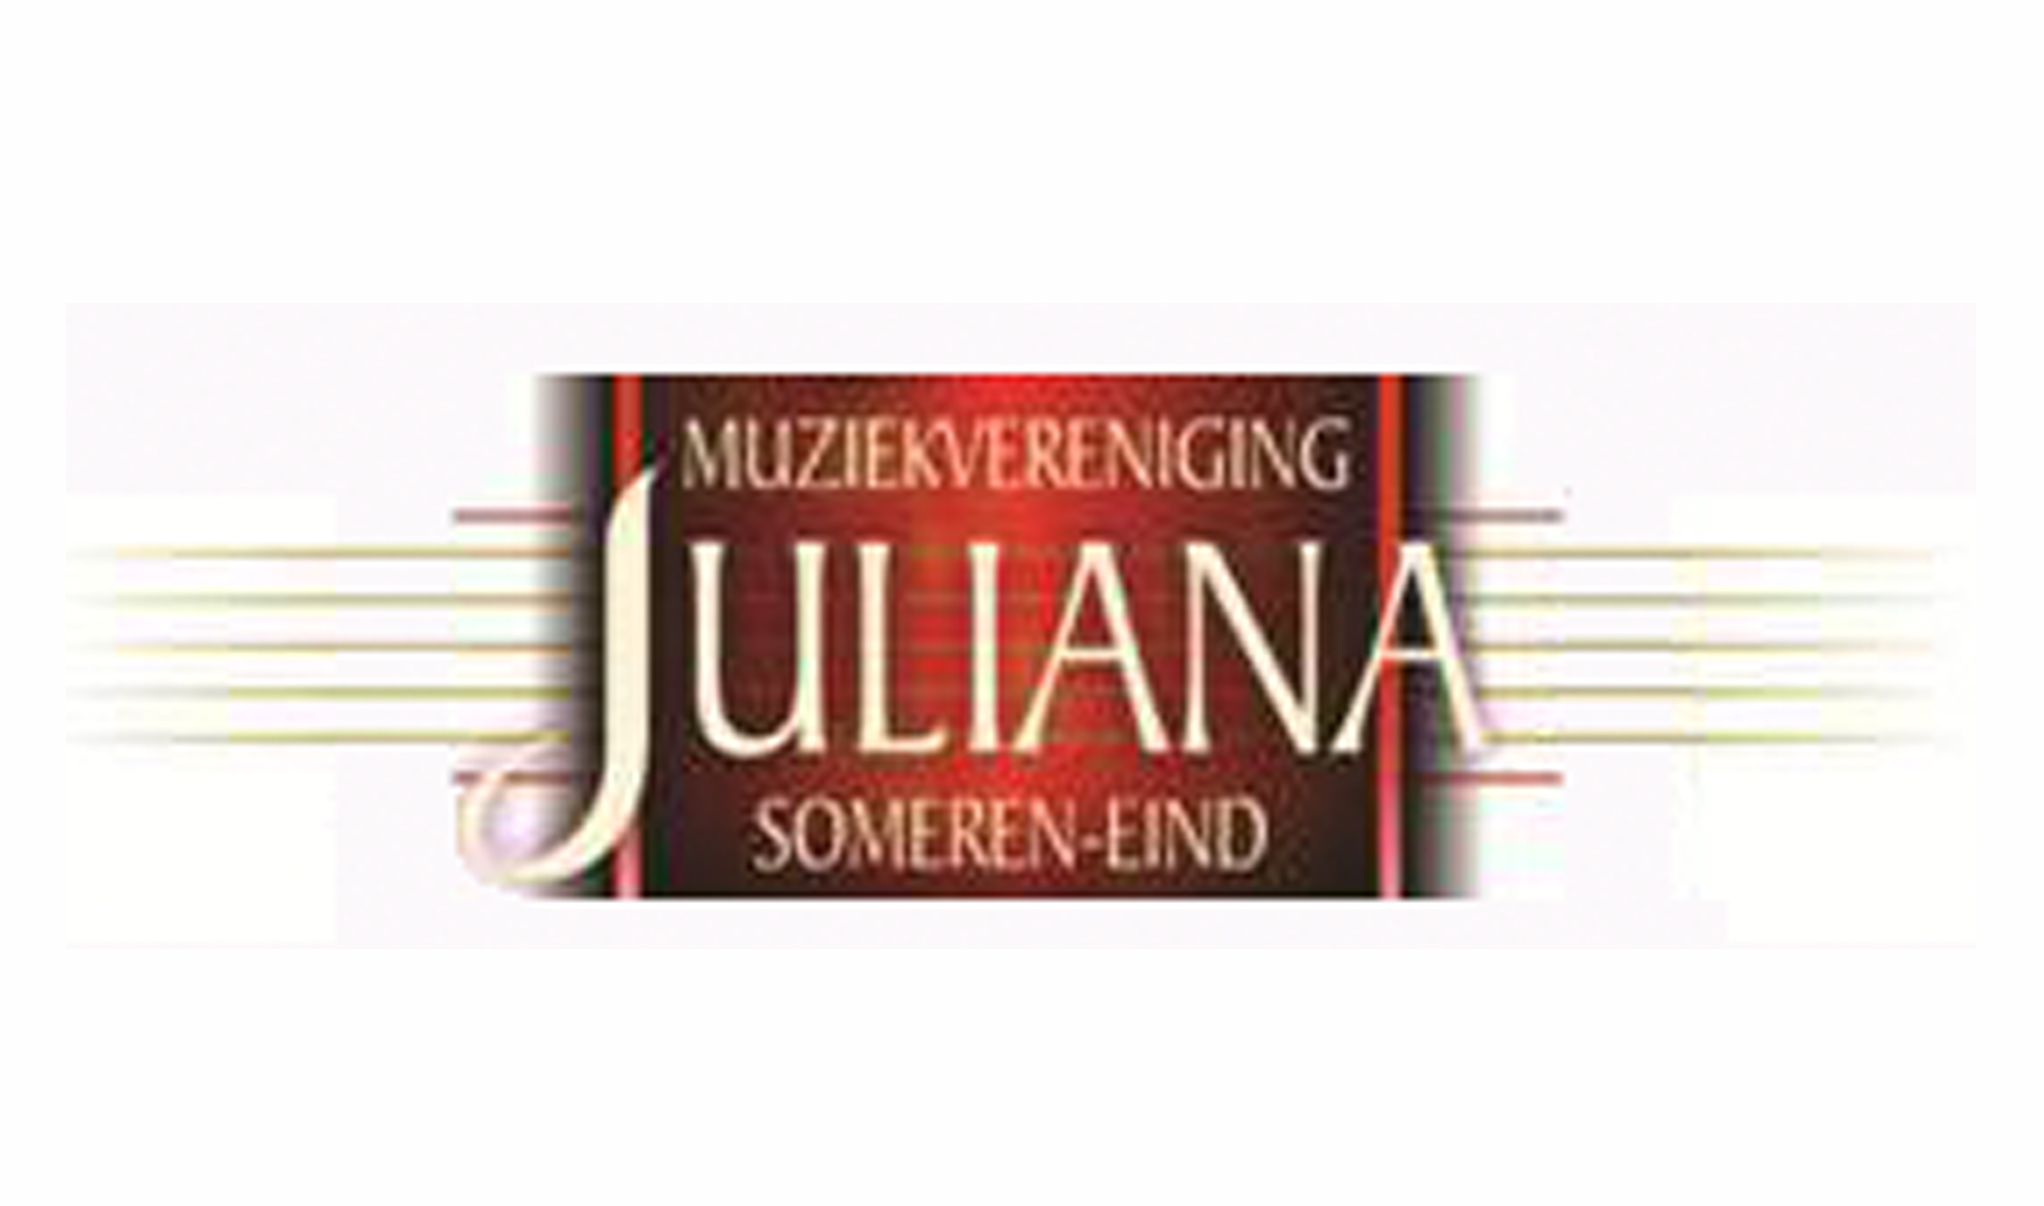 Muziekvereniging Juliana <br> Someren-Eind